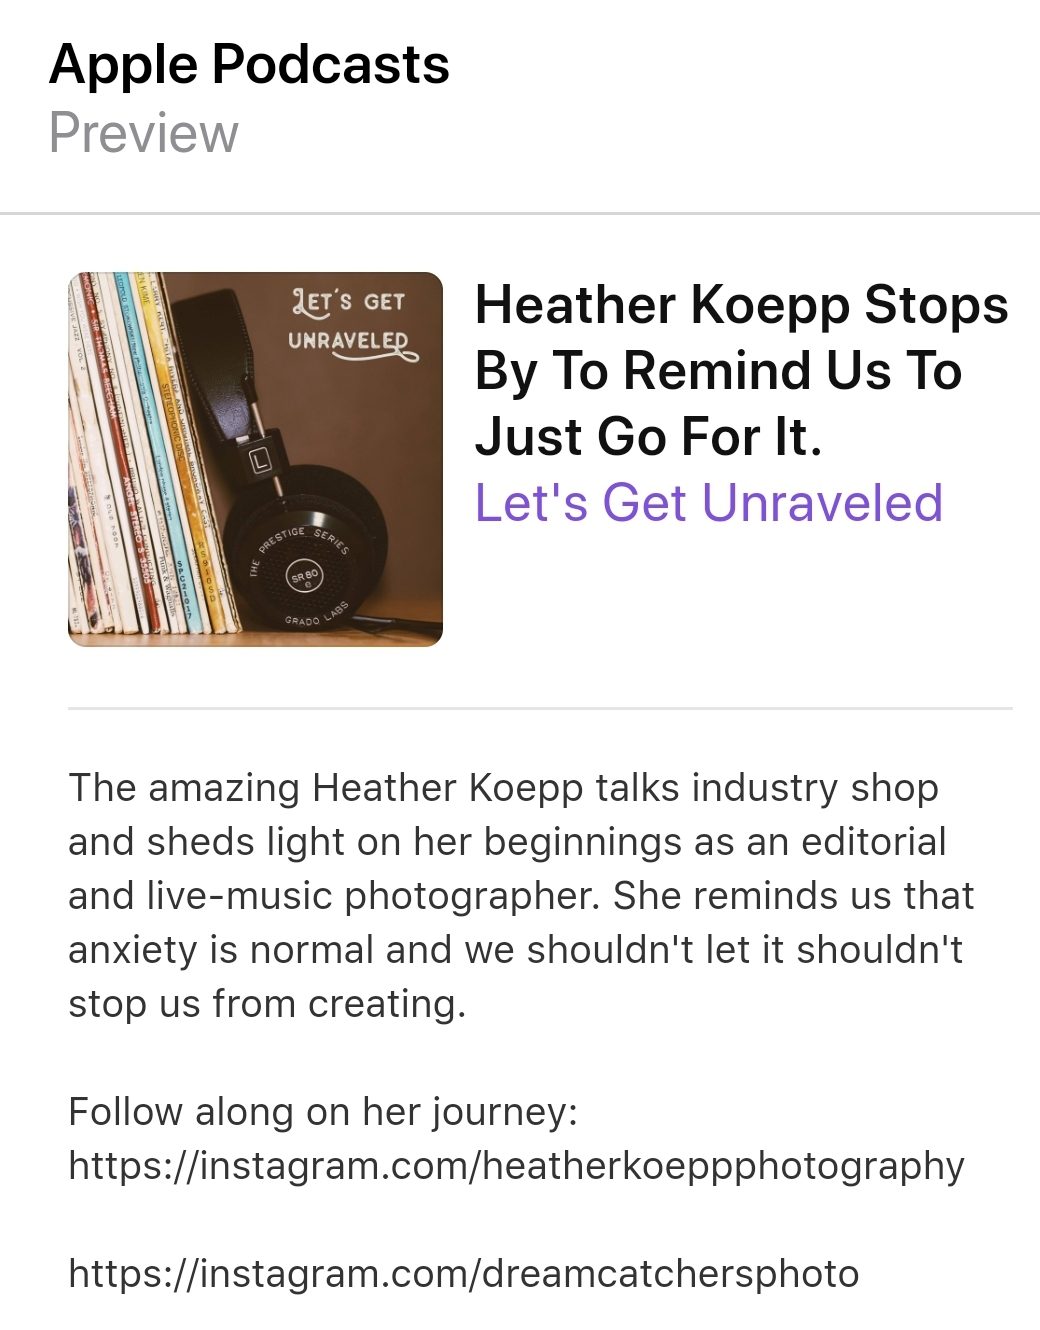 Podcast: listen to Heather's interview with 'THE UNRAVELED ACADEMY'https://soundcloud.com/lets-get-unraveled/heather-koepp-stops-by-to-remind-us-to-just-go-for-it -